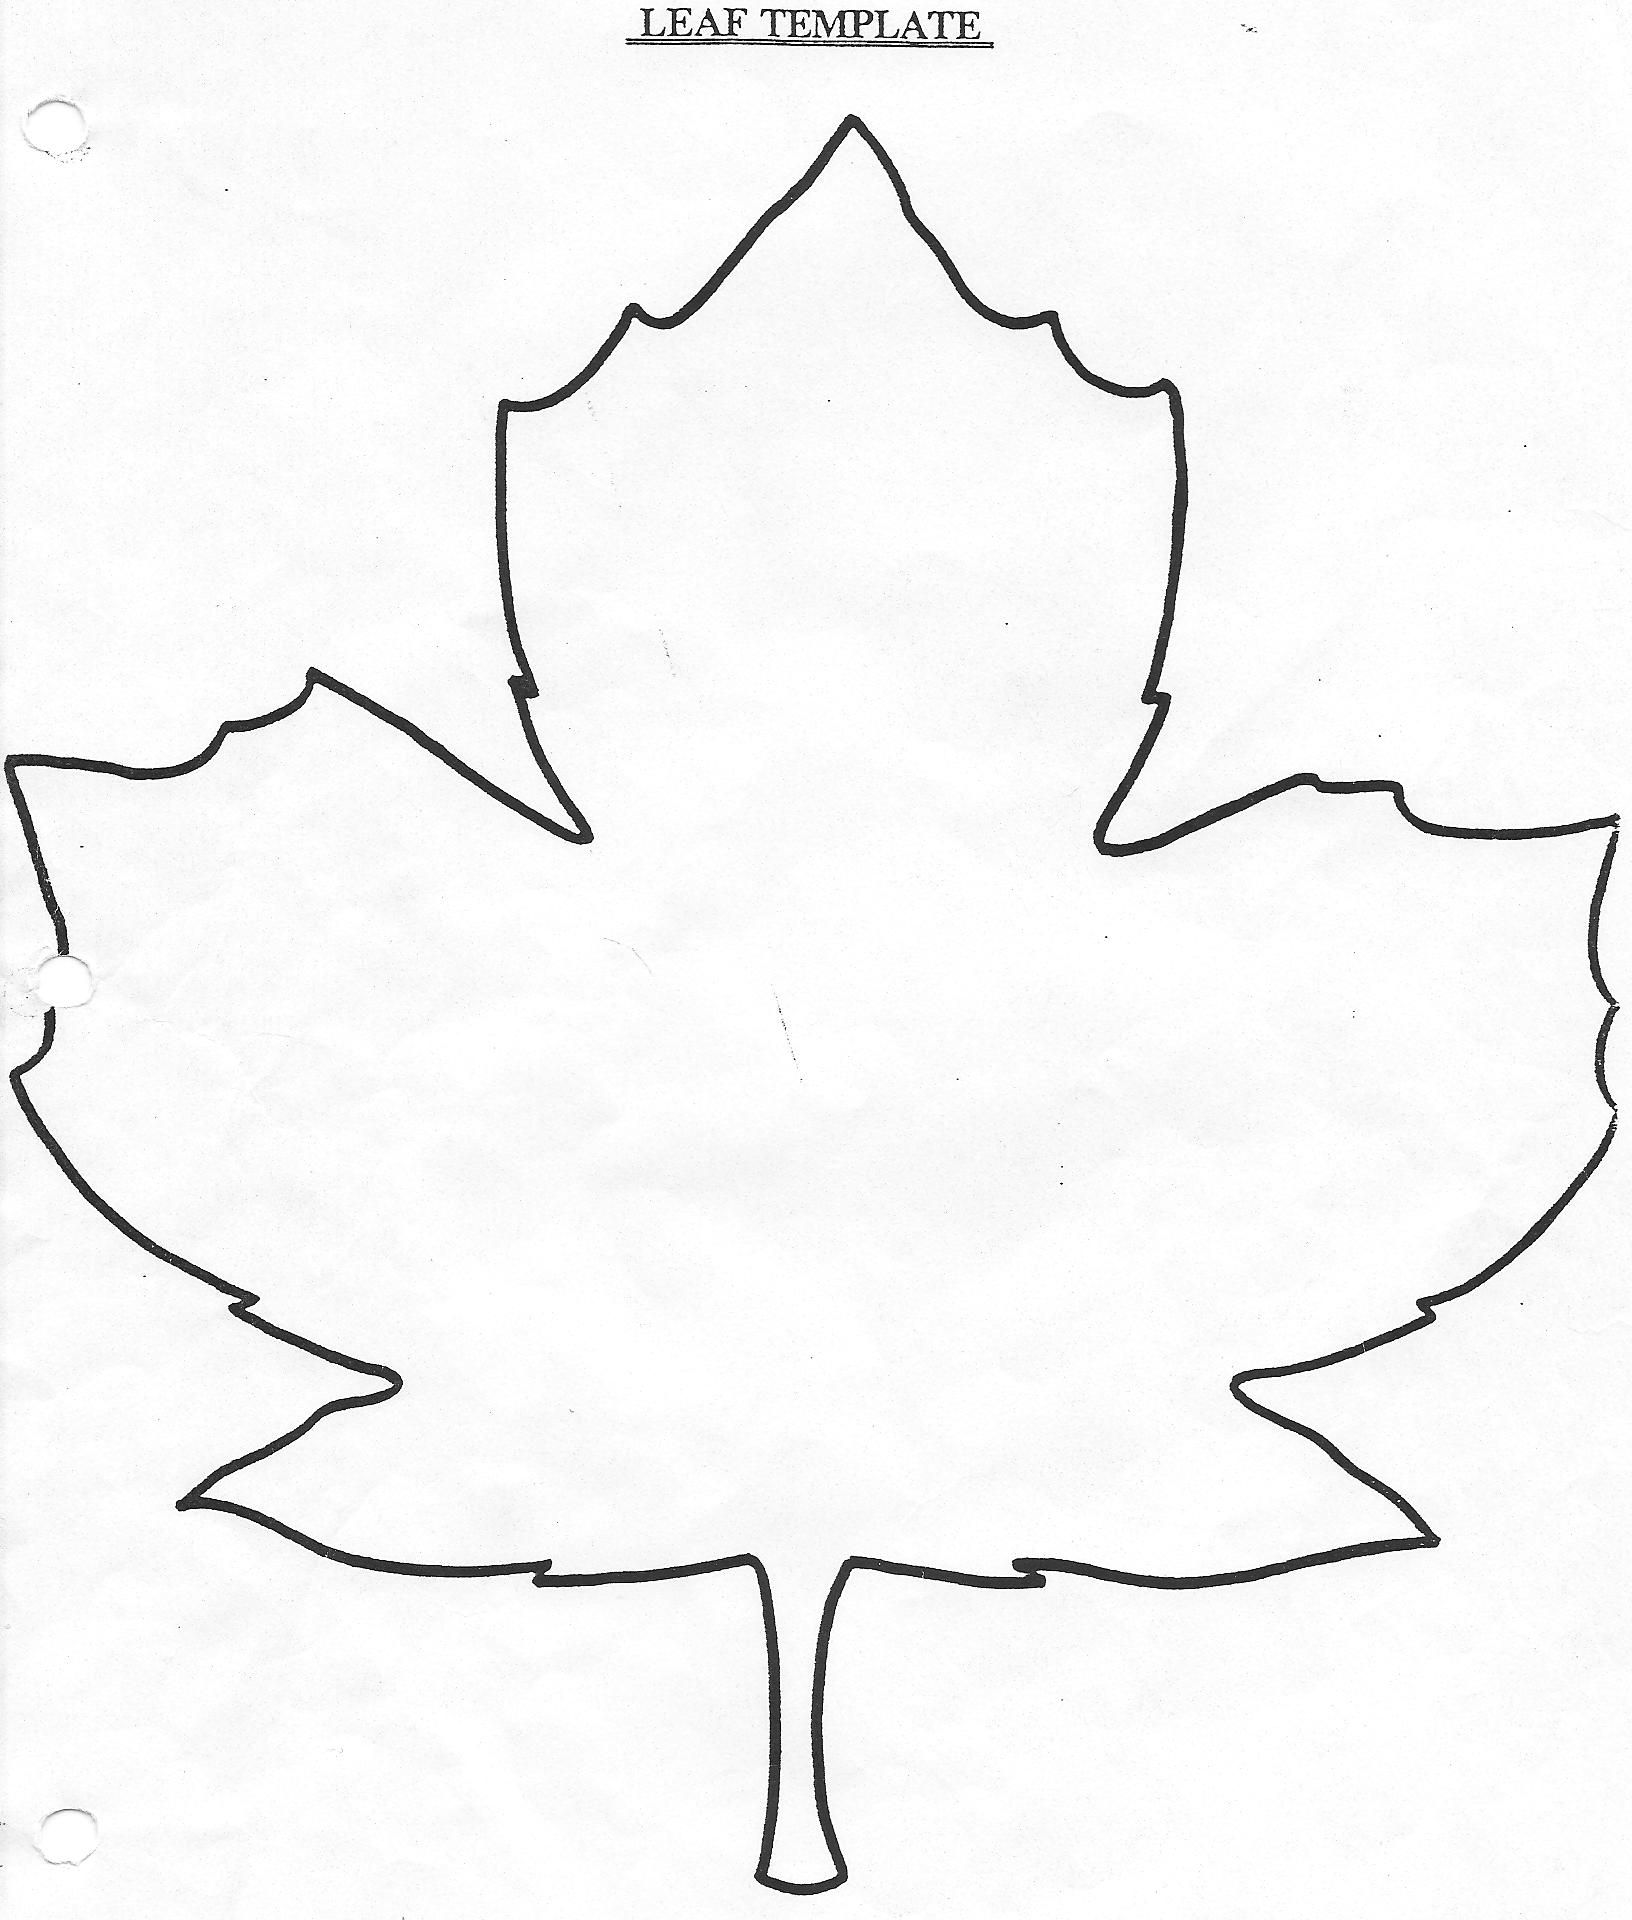 Best Photos of Large Leaf Template - Fall Leaves Template Coloring ...